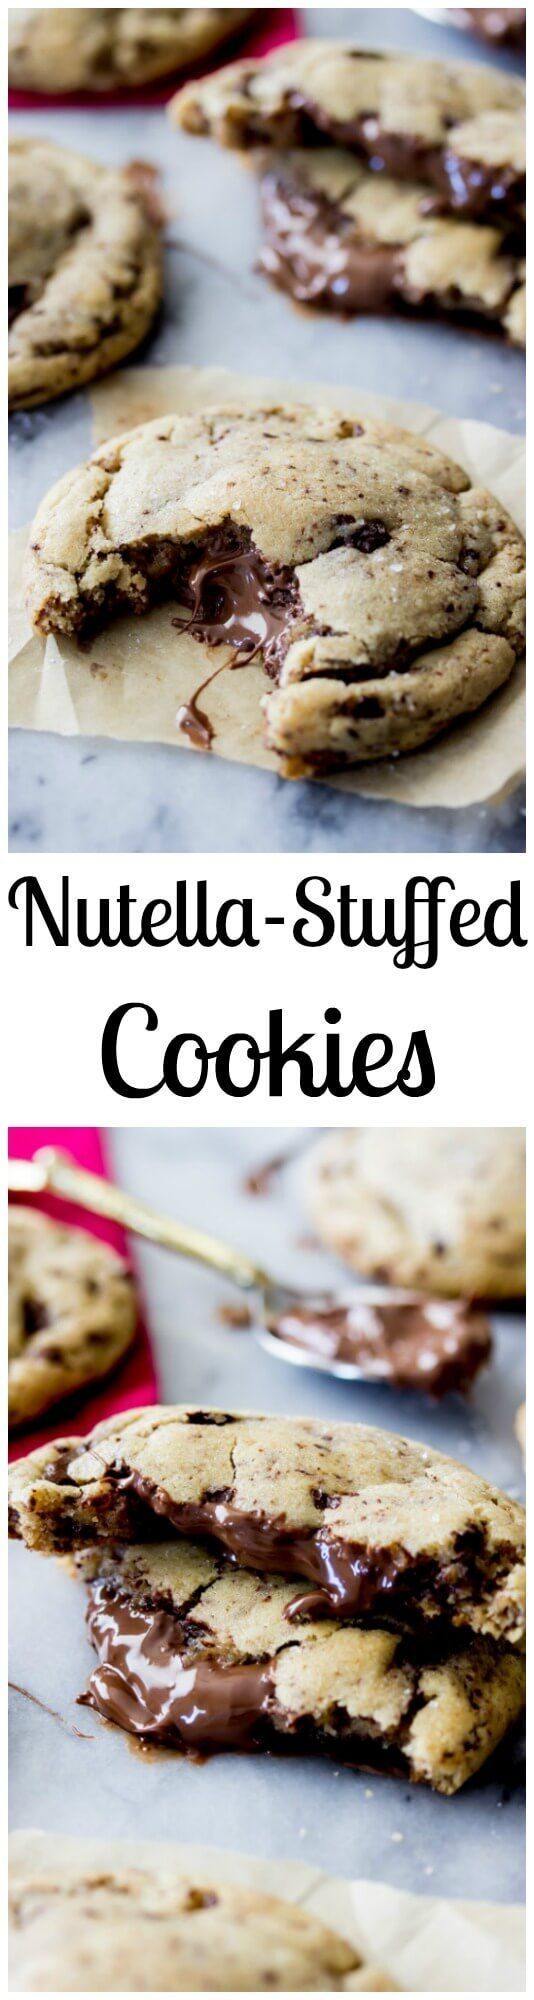 Nutella Stuffed Cookies - made with brown butter and sprinkled with sea salt!    Sugar Spun Run via /sugarspunrun/